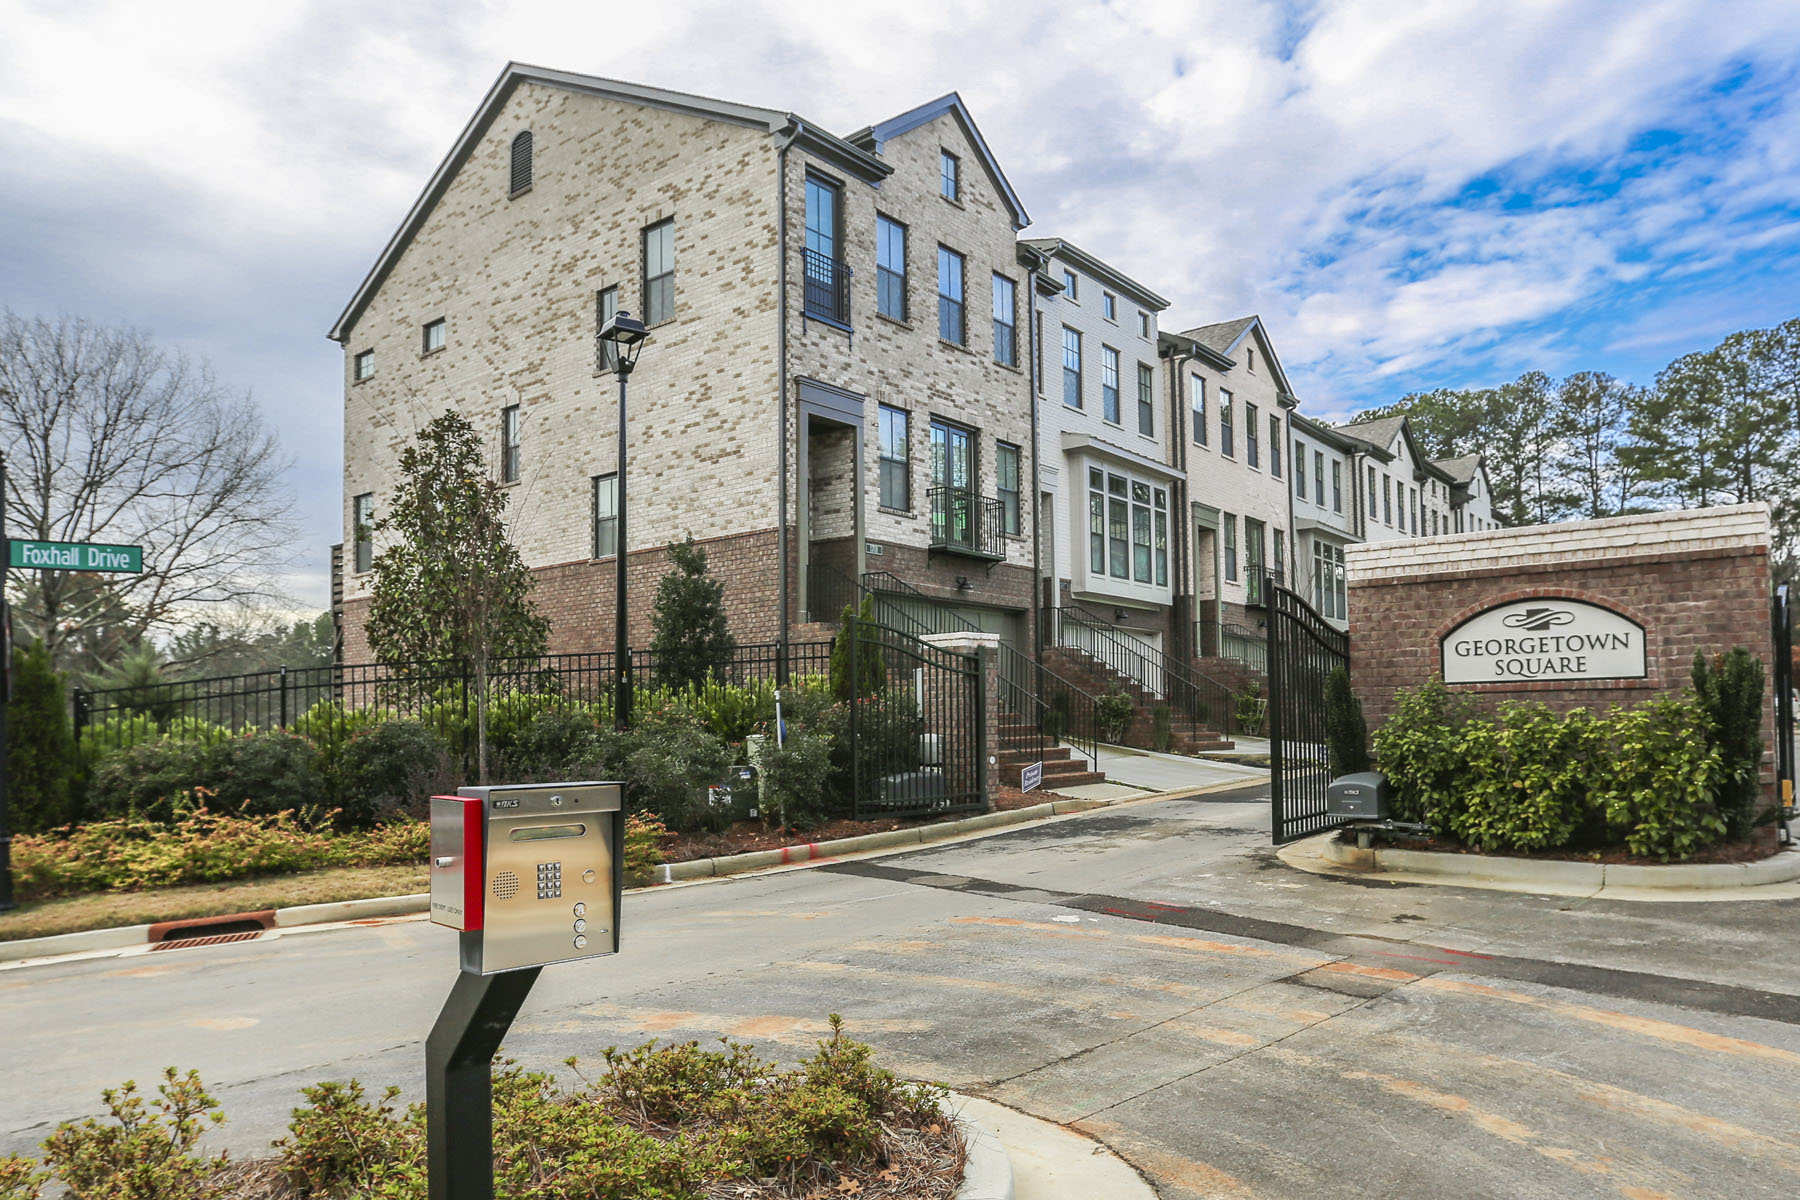 Таунхаус для того Продажа на New Construction Townhome in the Heart of Dunwoody 4330 Georgetown Square Unit 15 Dunwoody, Джорджия 30338 Соединенные Штаты